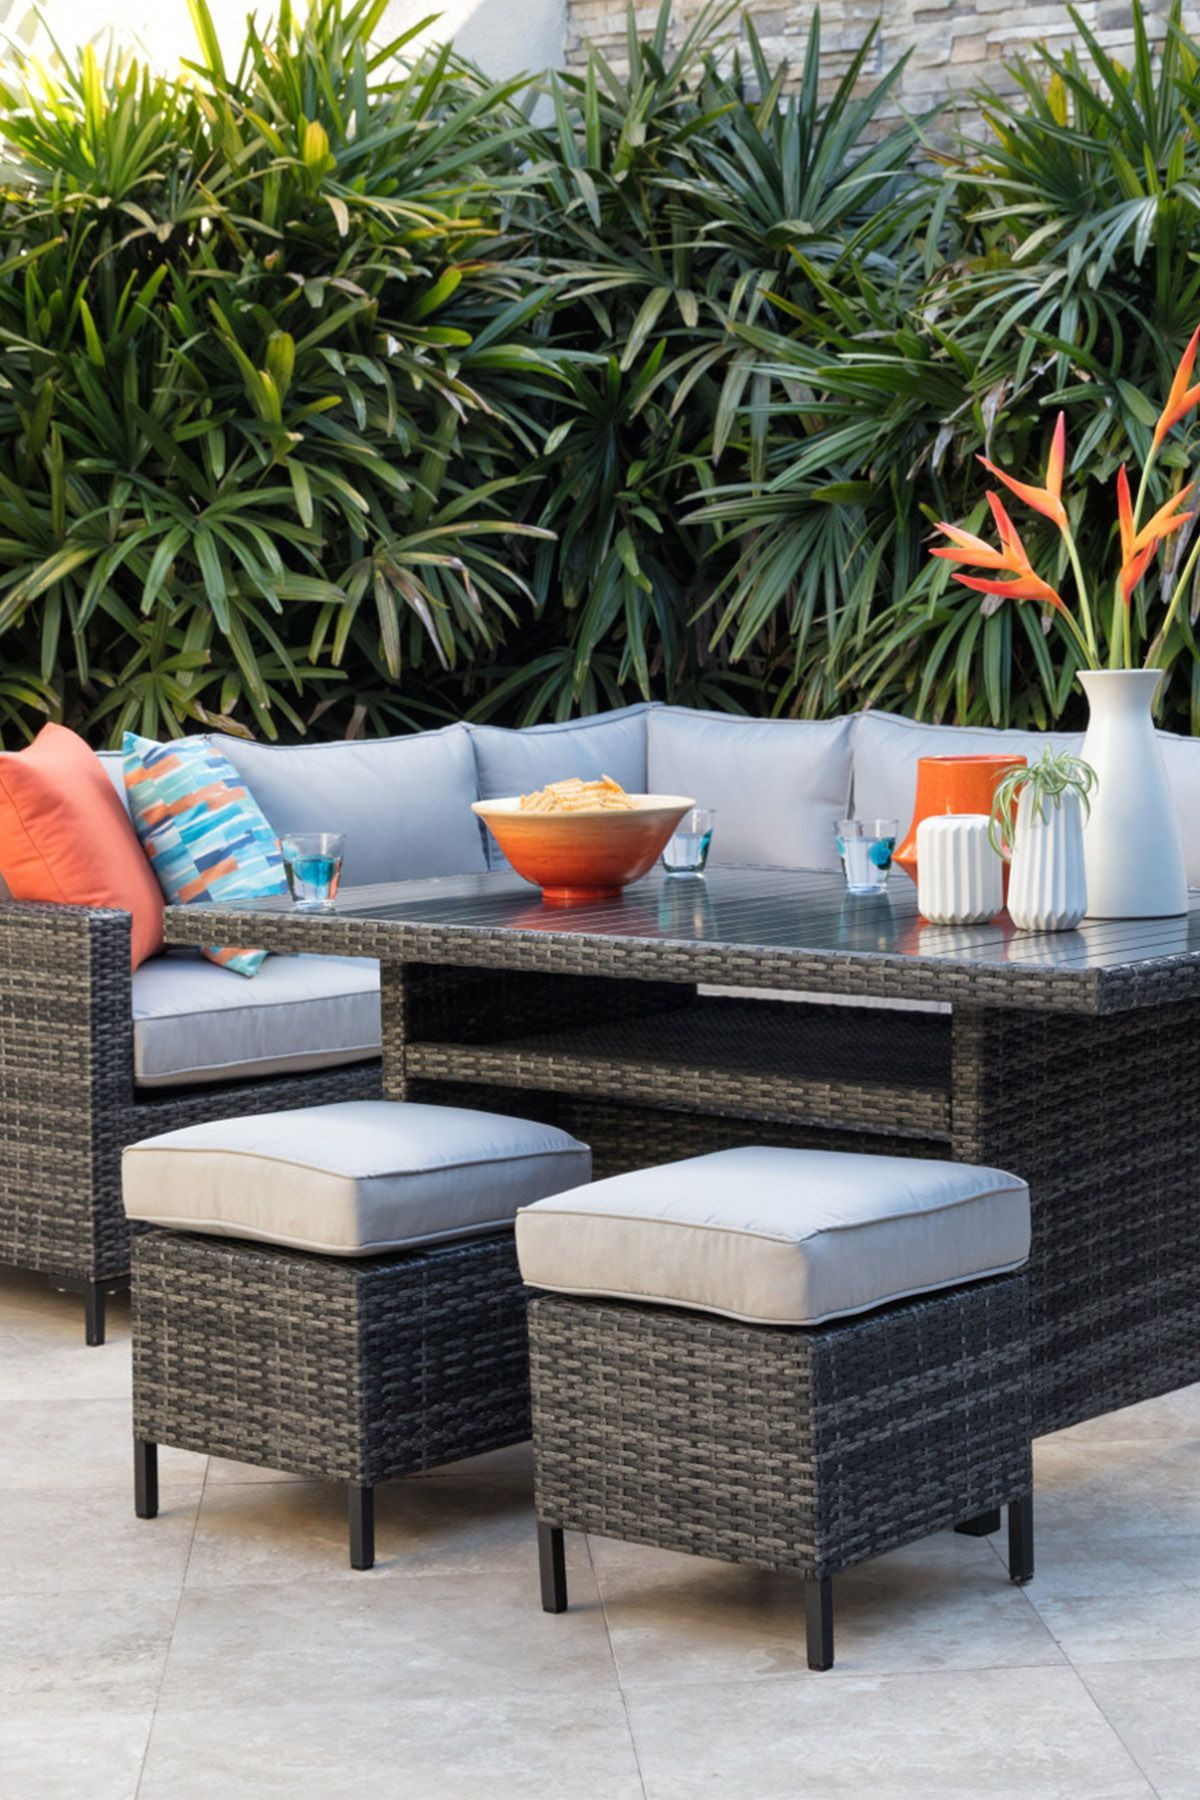 Outdoor Domingo Banquette Lounge With 23 Ottomans  Deck furniture